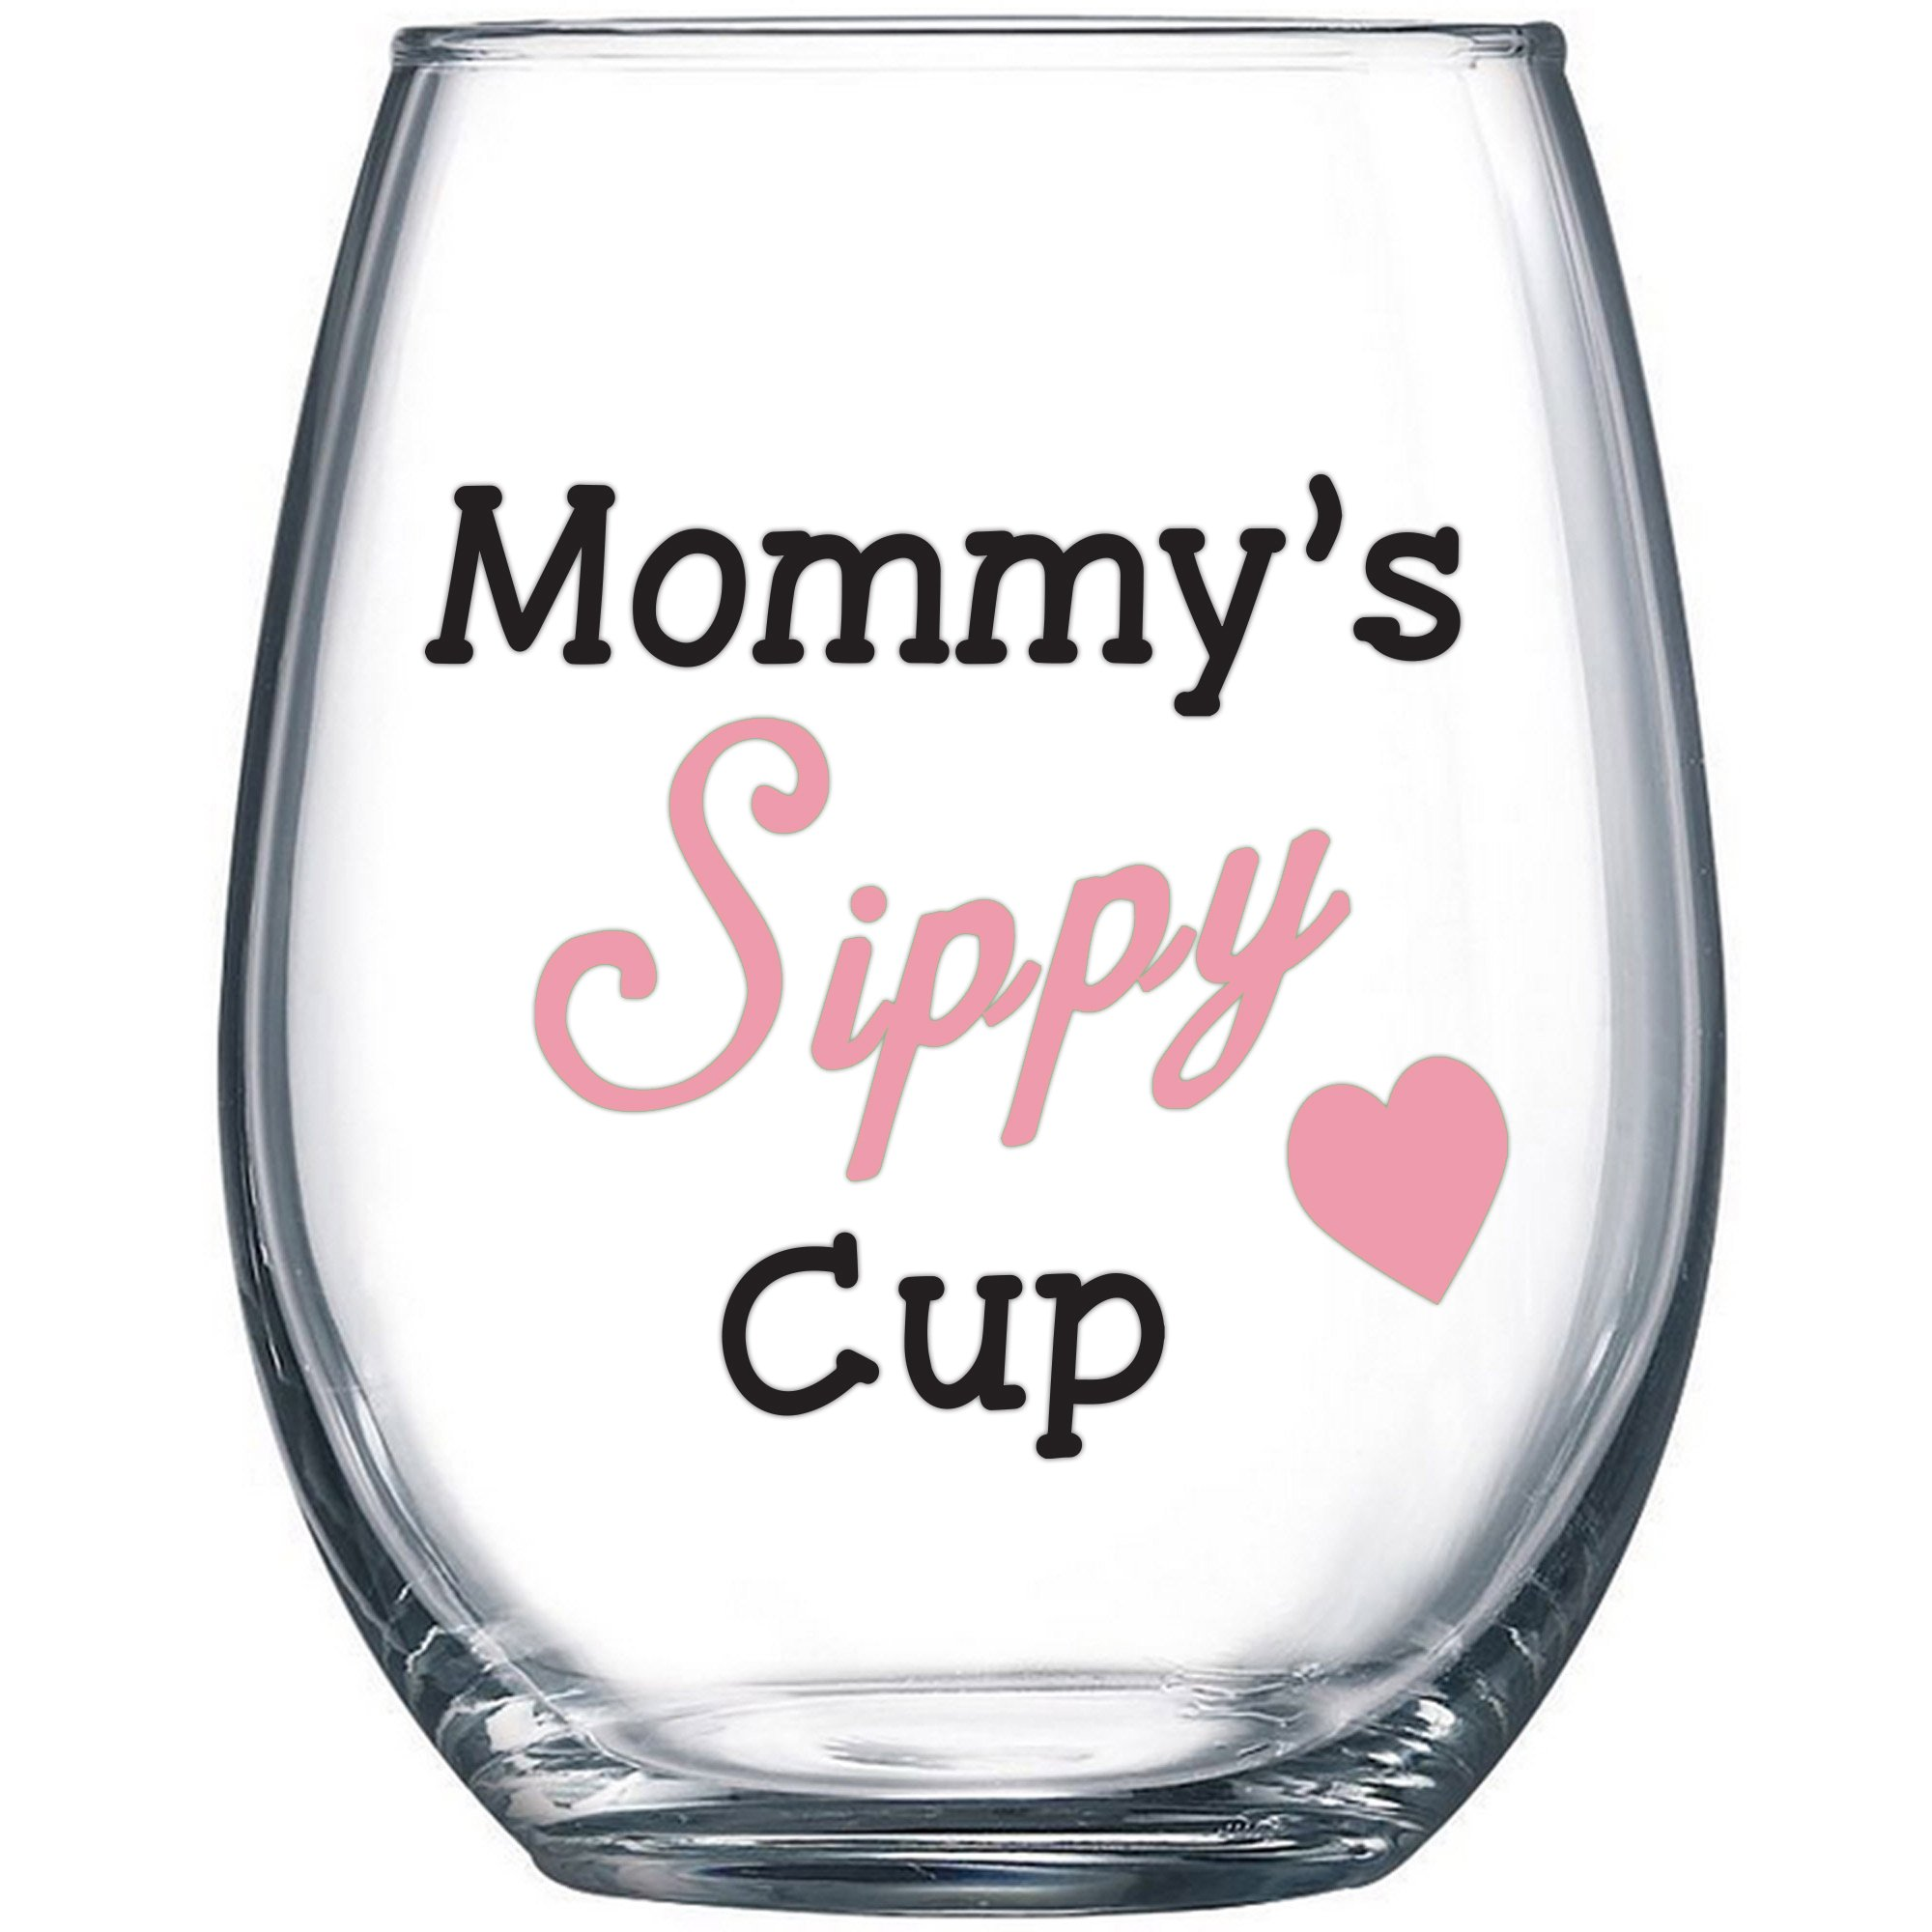 Mommyu0027s Sippy Cup - Funny Wine Glass 15oz - Motheru0027s Day Gift for Mom Gift  sc 1 st  Amazon.com & Best Christmas Gifts for Moms: Amazon.com